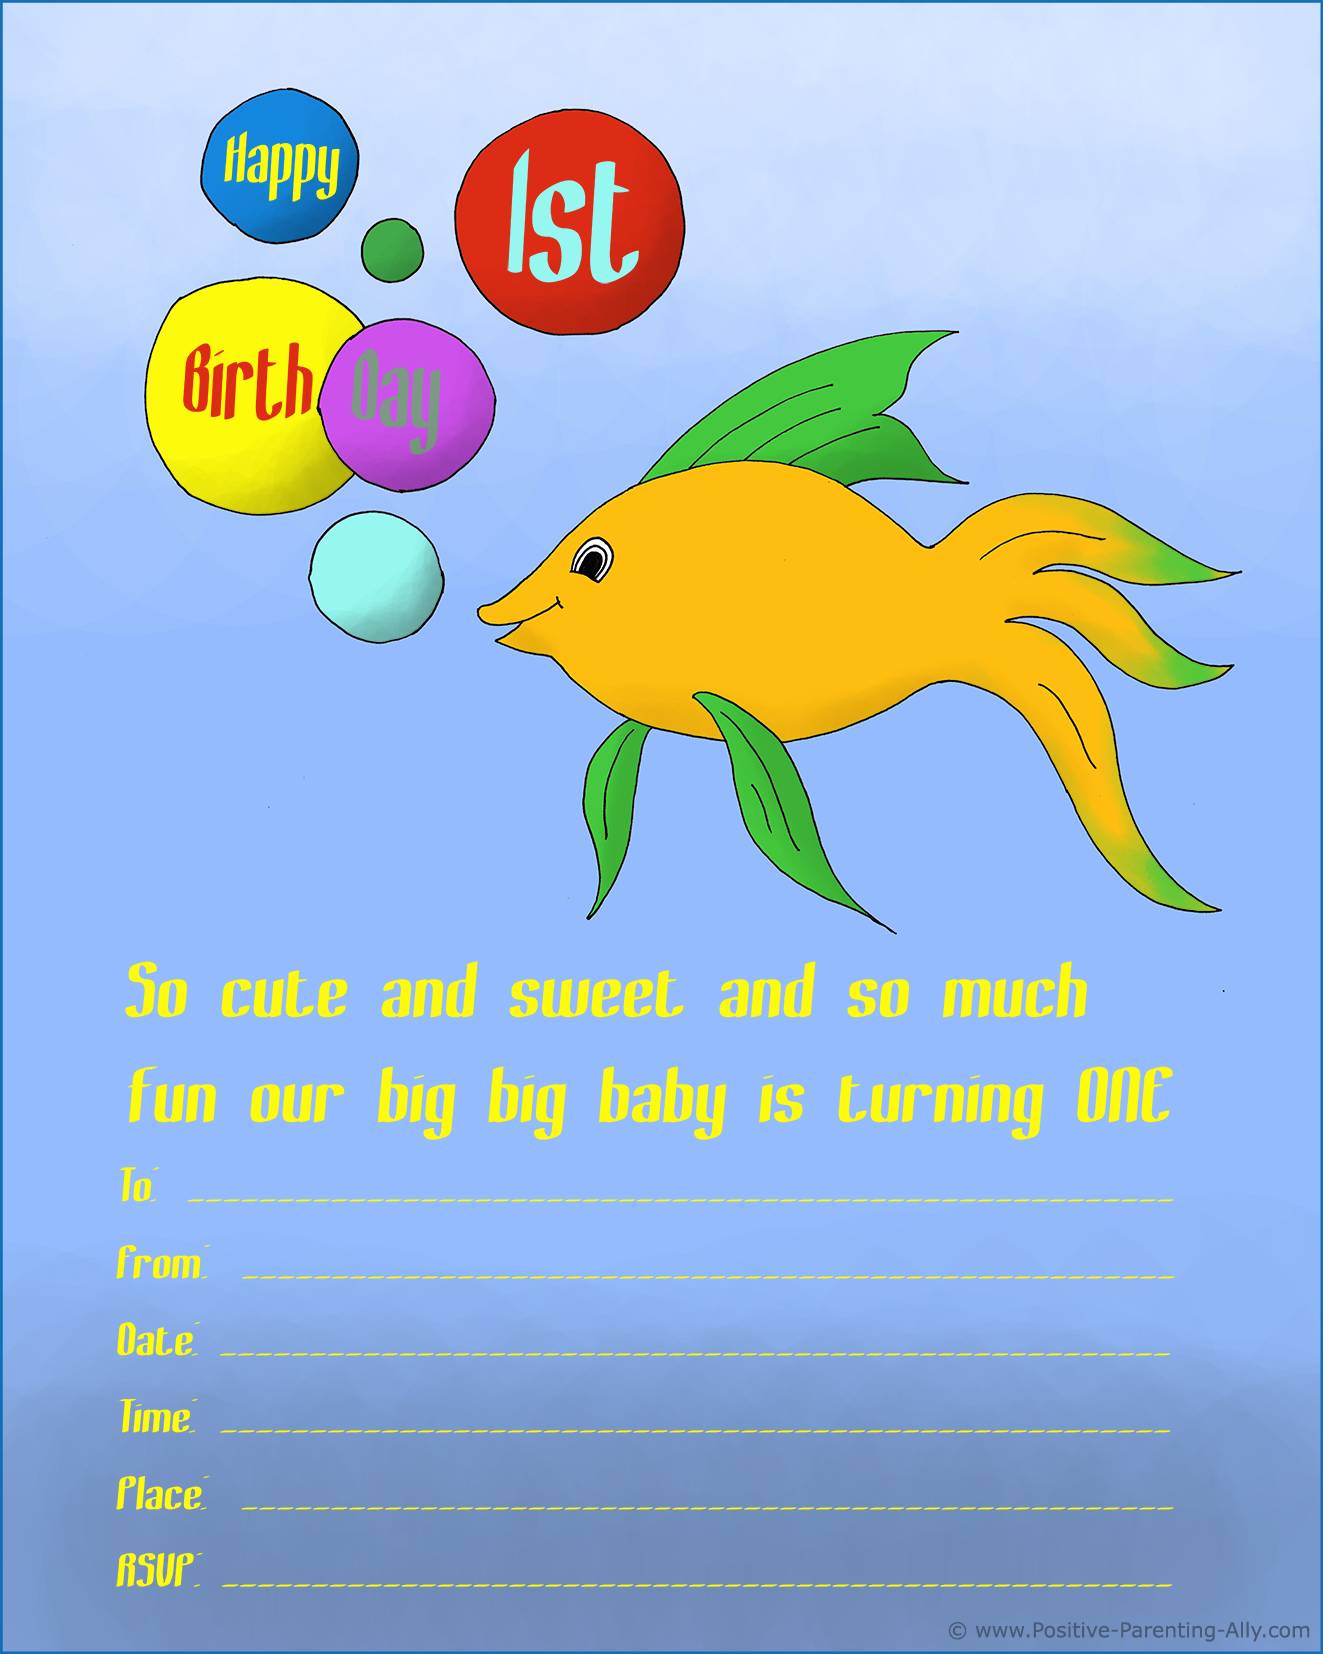 1st birthday invitations to print with animal themes: yellow fish with colorful bubbles wishing happy birthday.